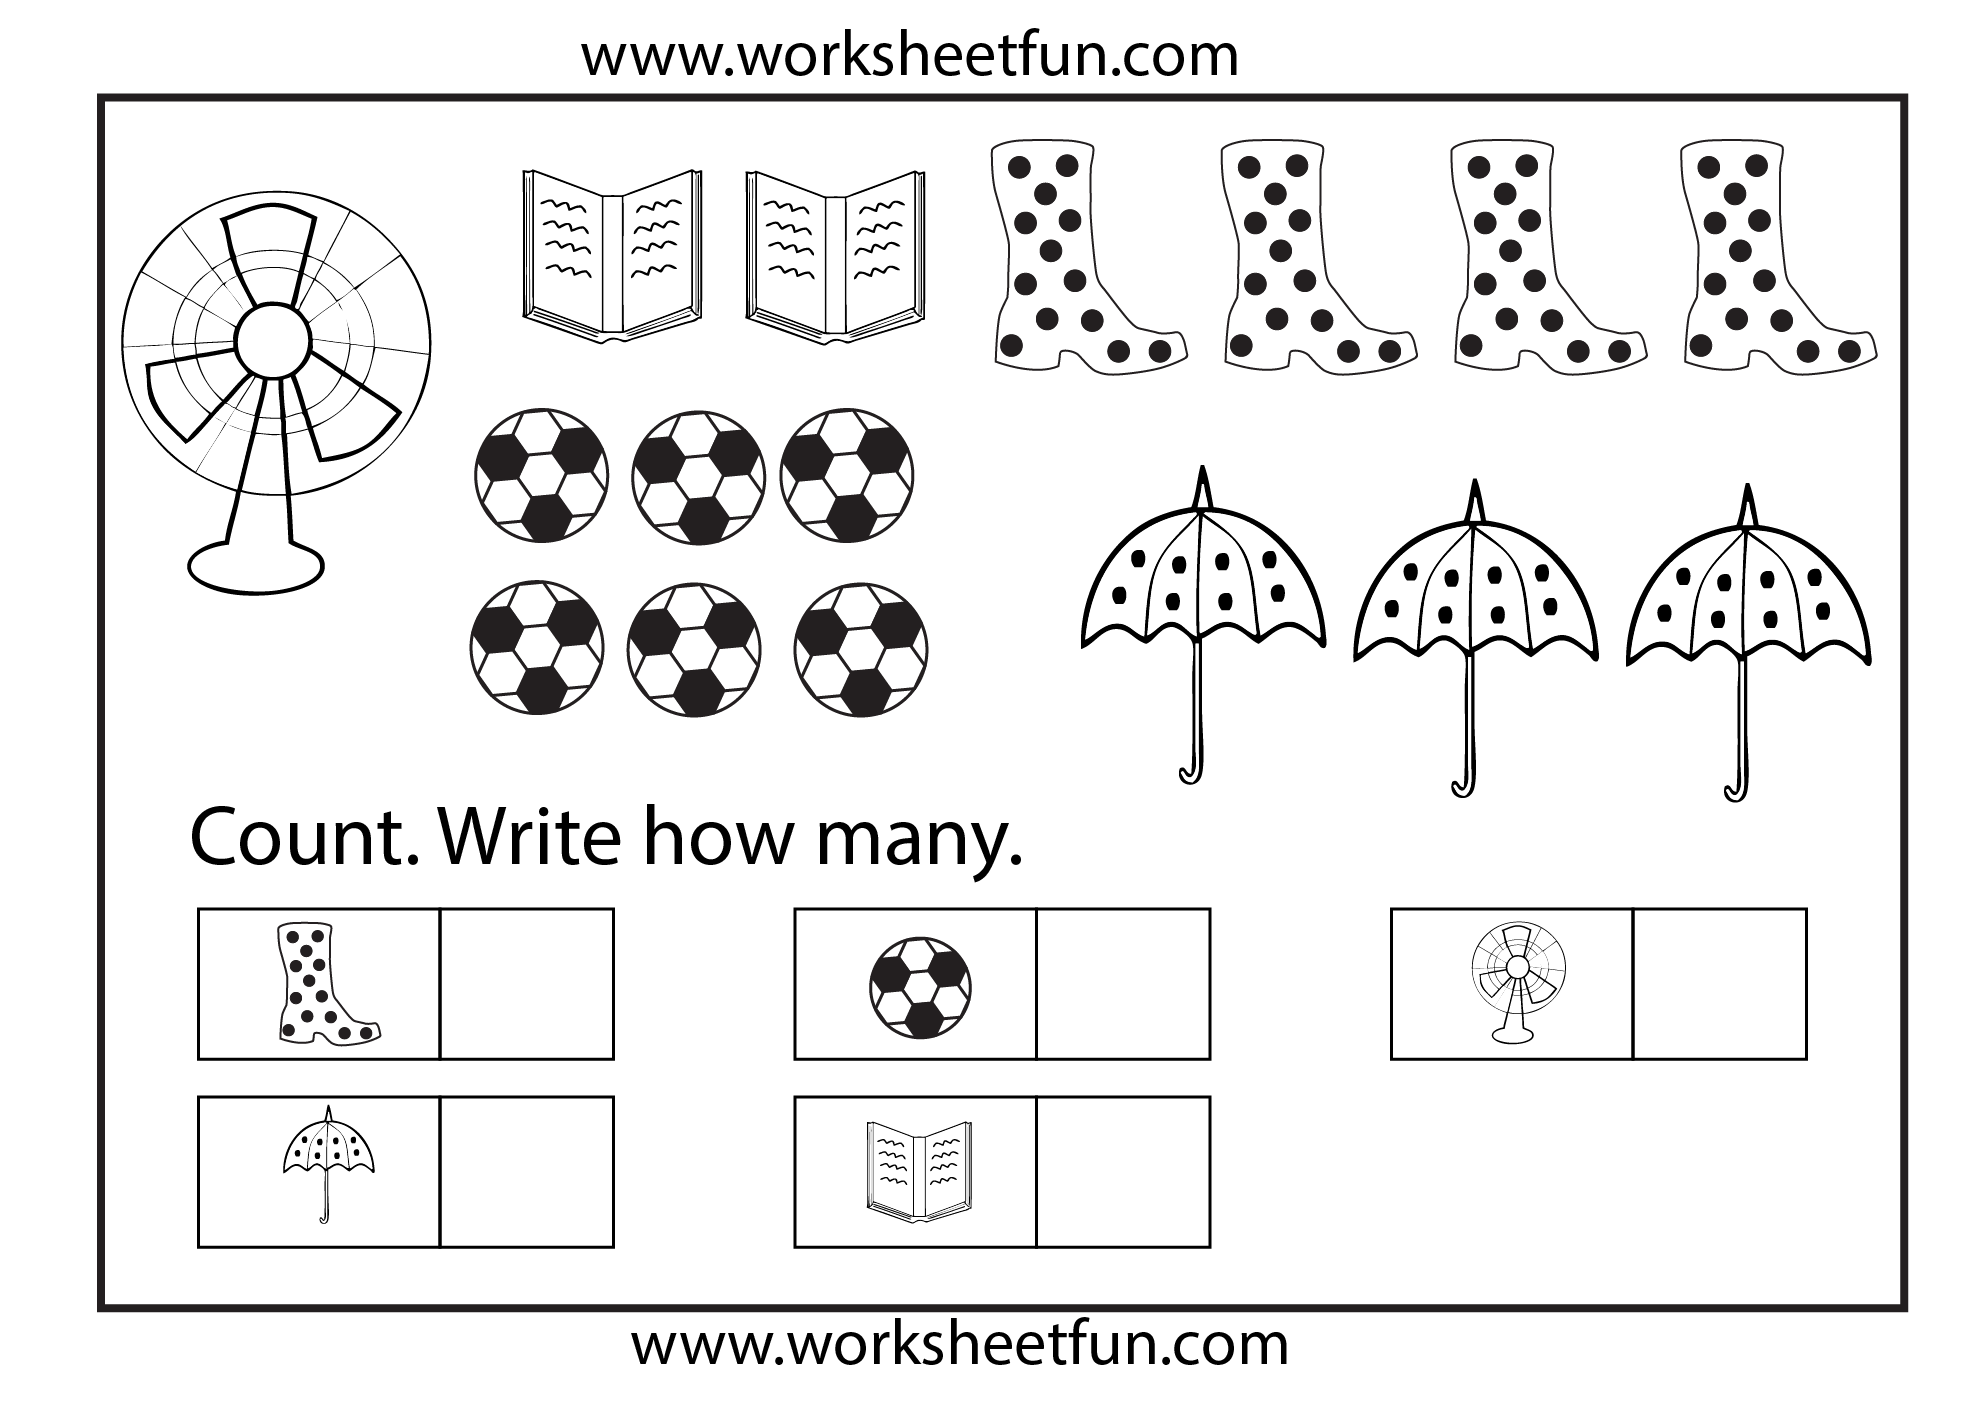 Worksheet 19891406 110 Worksheets for Kindergarten Counting – Counting Worksheet for Kindergarten